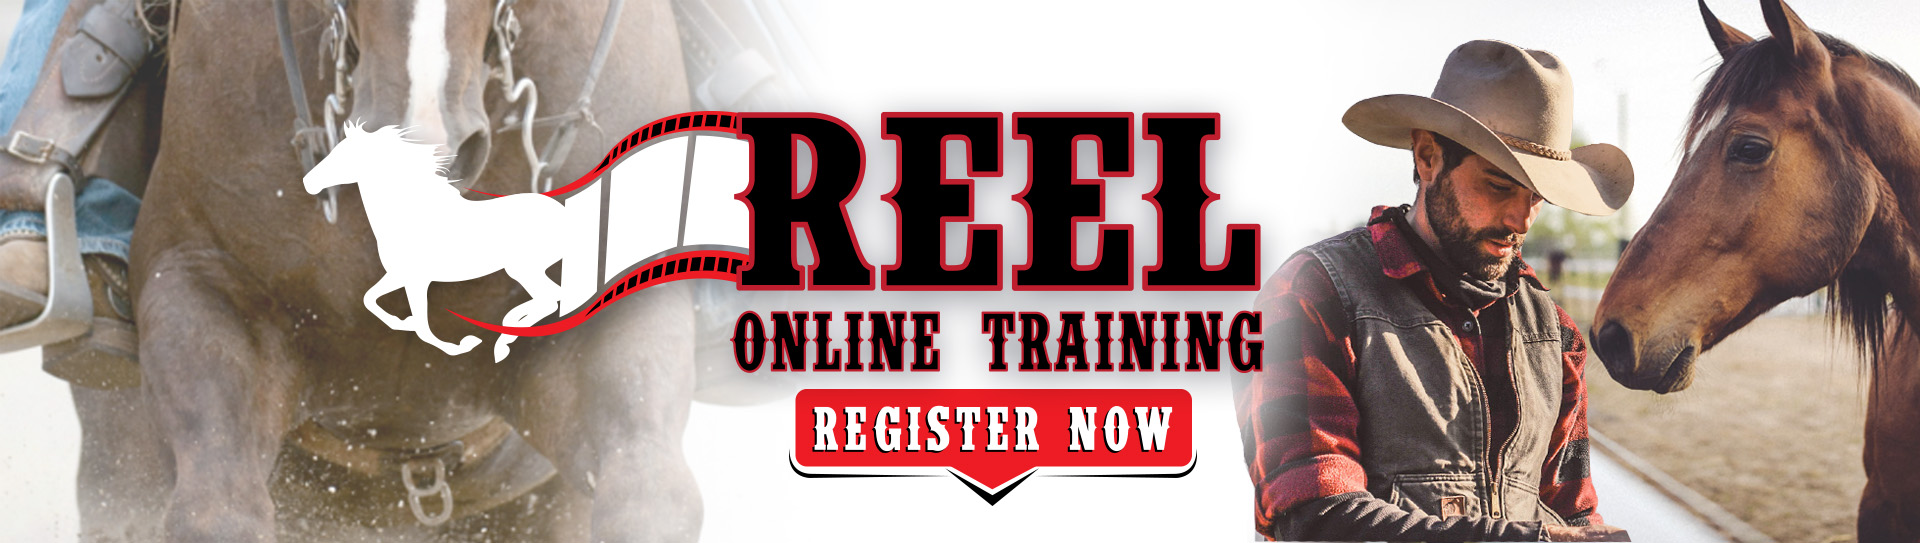 Reel Online Training Registration Banner